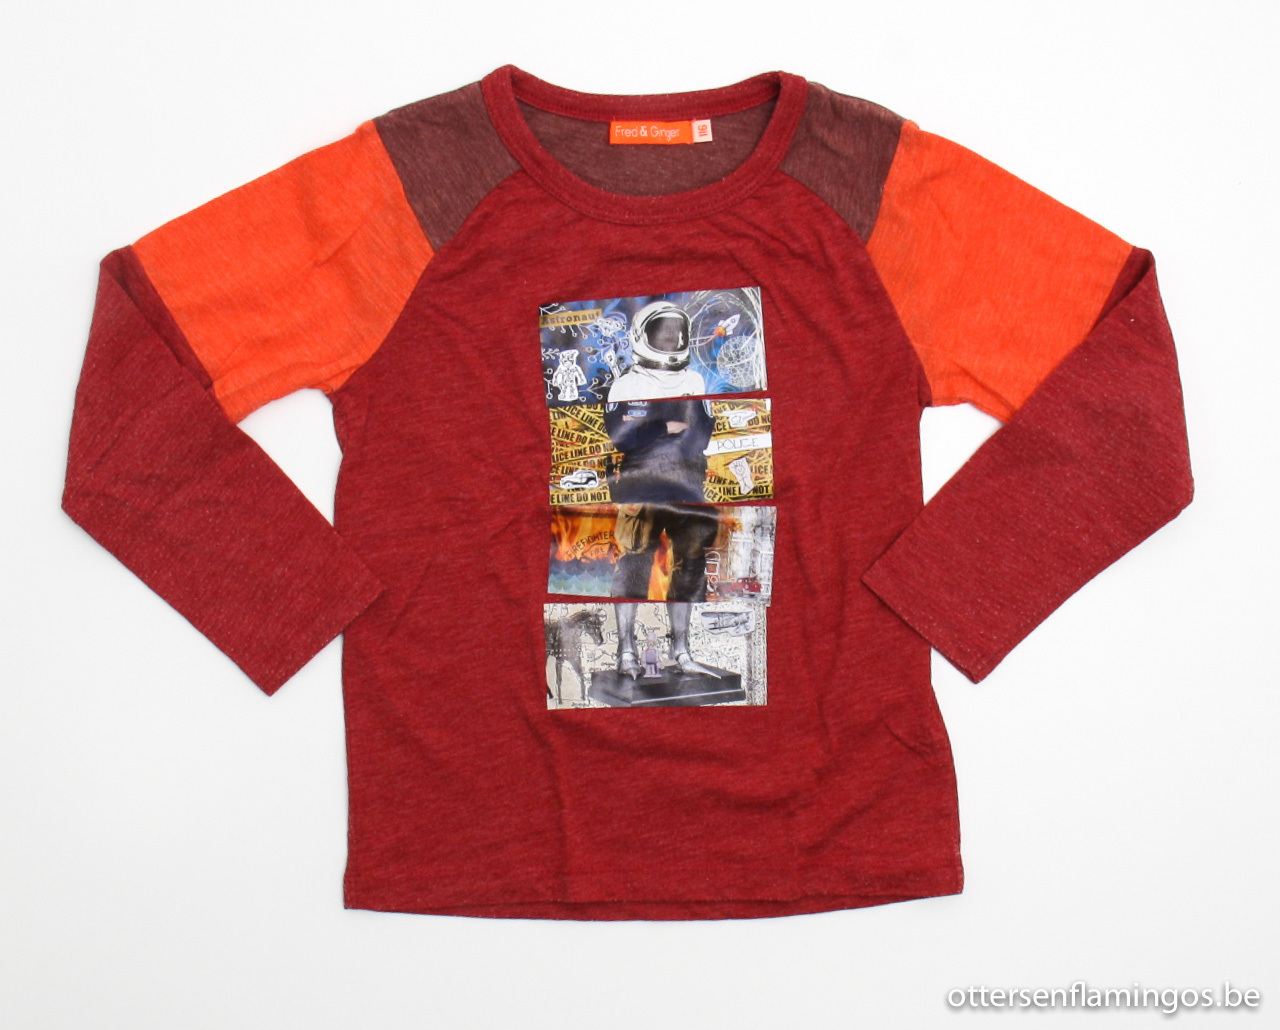 Rode longsleeve T - shirt, Fred en Ginger, 116